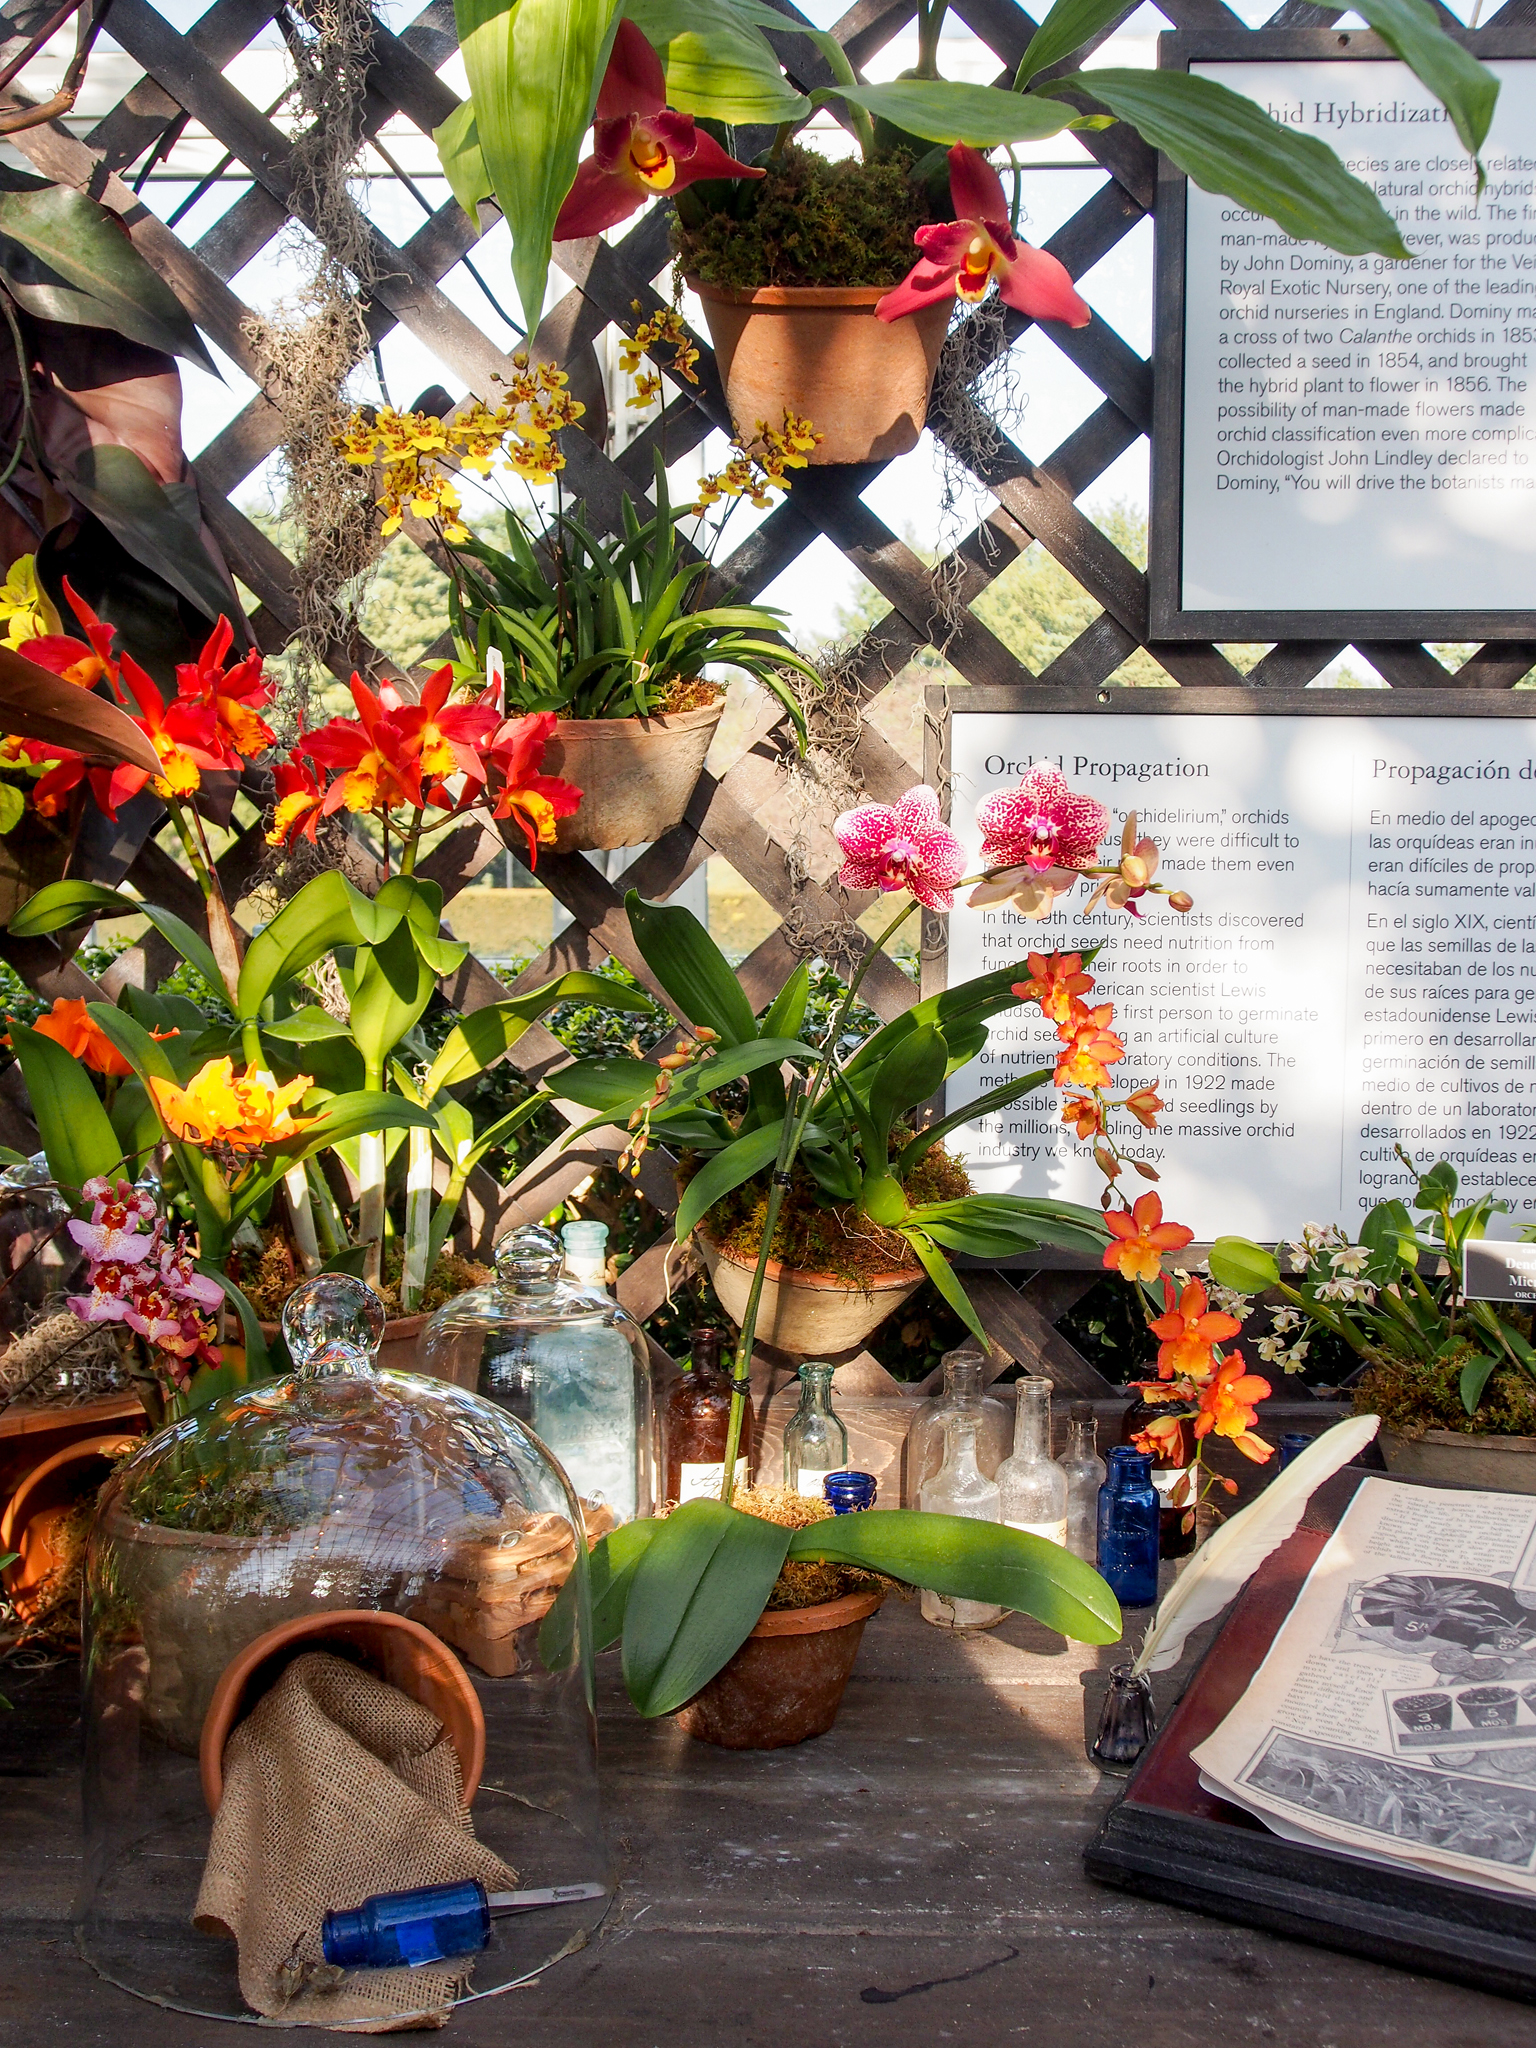 While exploring the Haupt Conservatory's exhibition, look for a 19th-century orchid propagation display featuring a copy of   Orchidaceae of Mexico and Guatemala  , a landmark work by Victorian horticulturist  James Bateman .